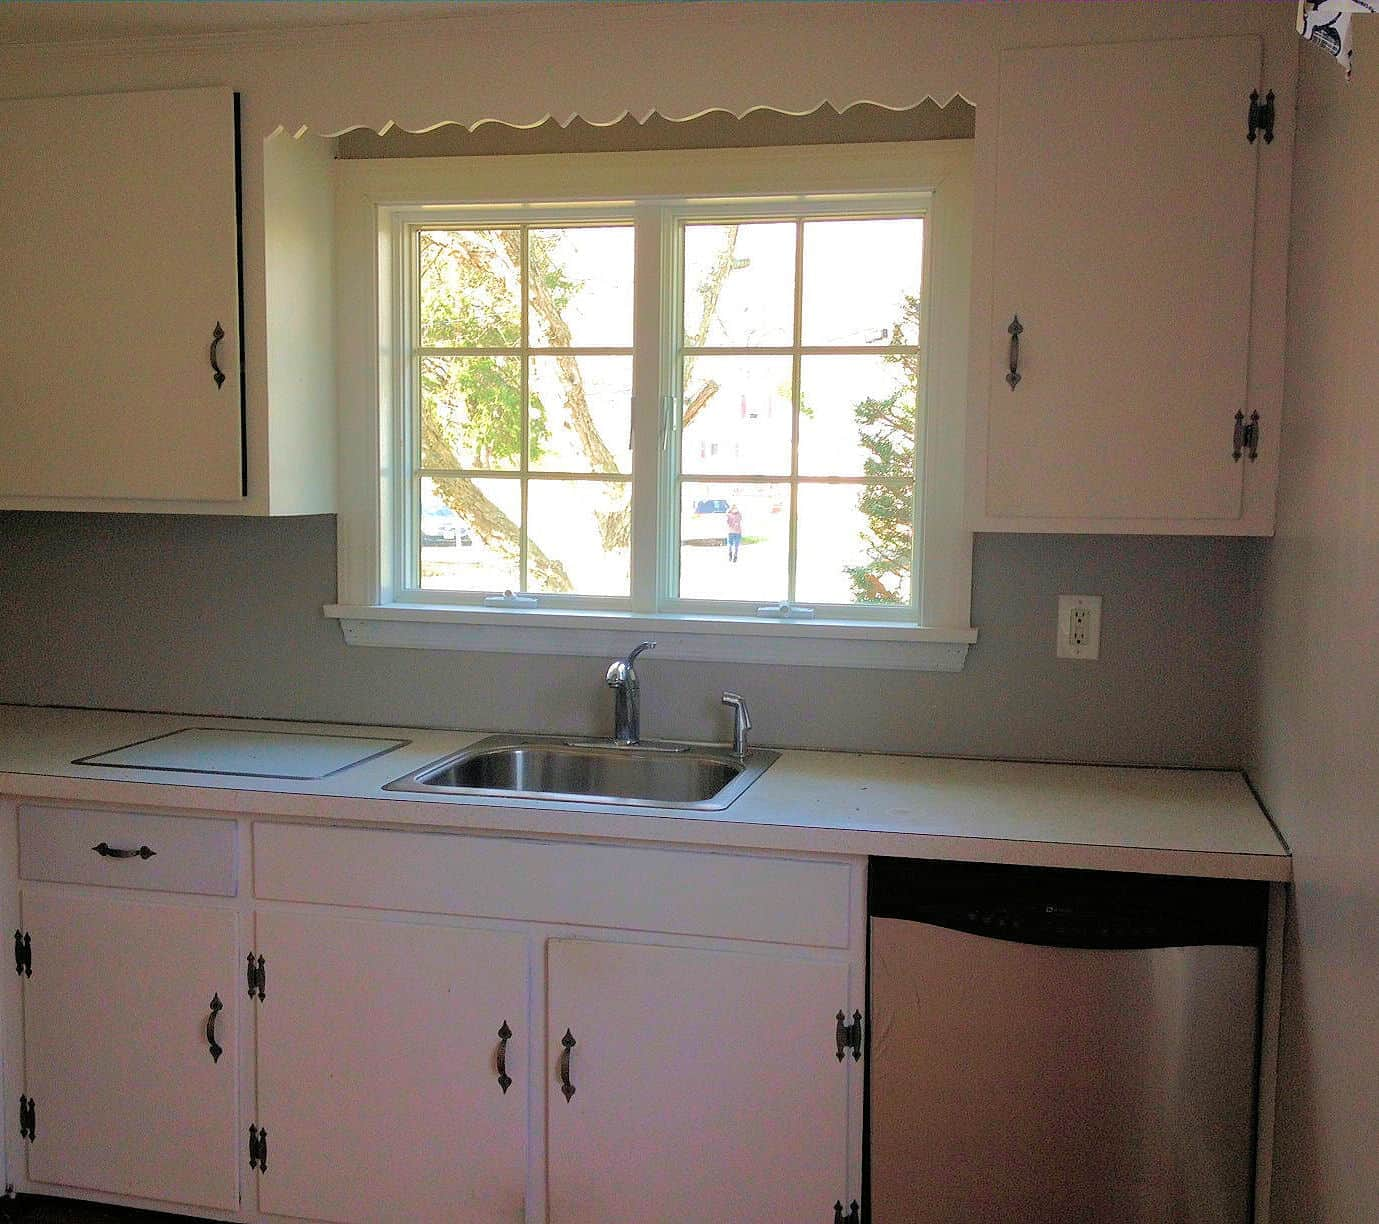 Walls painted gray and white cabinets